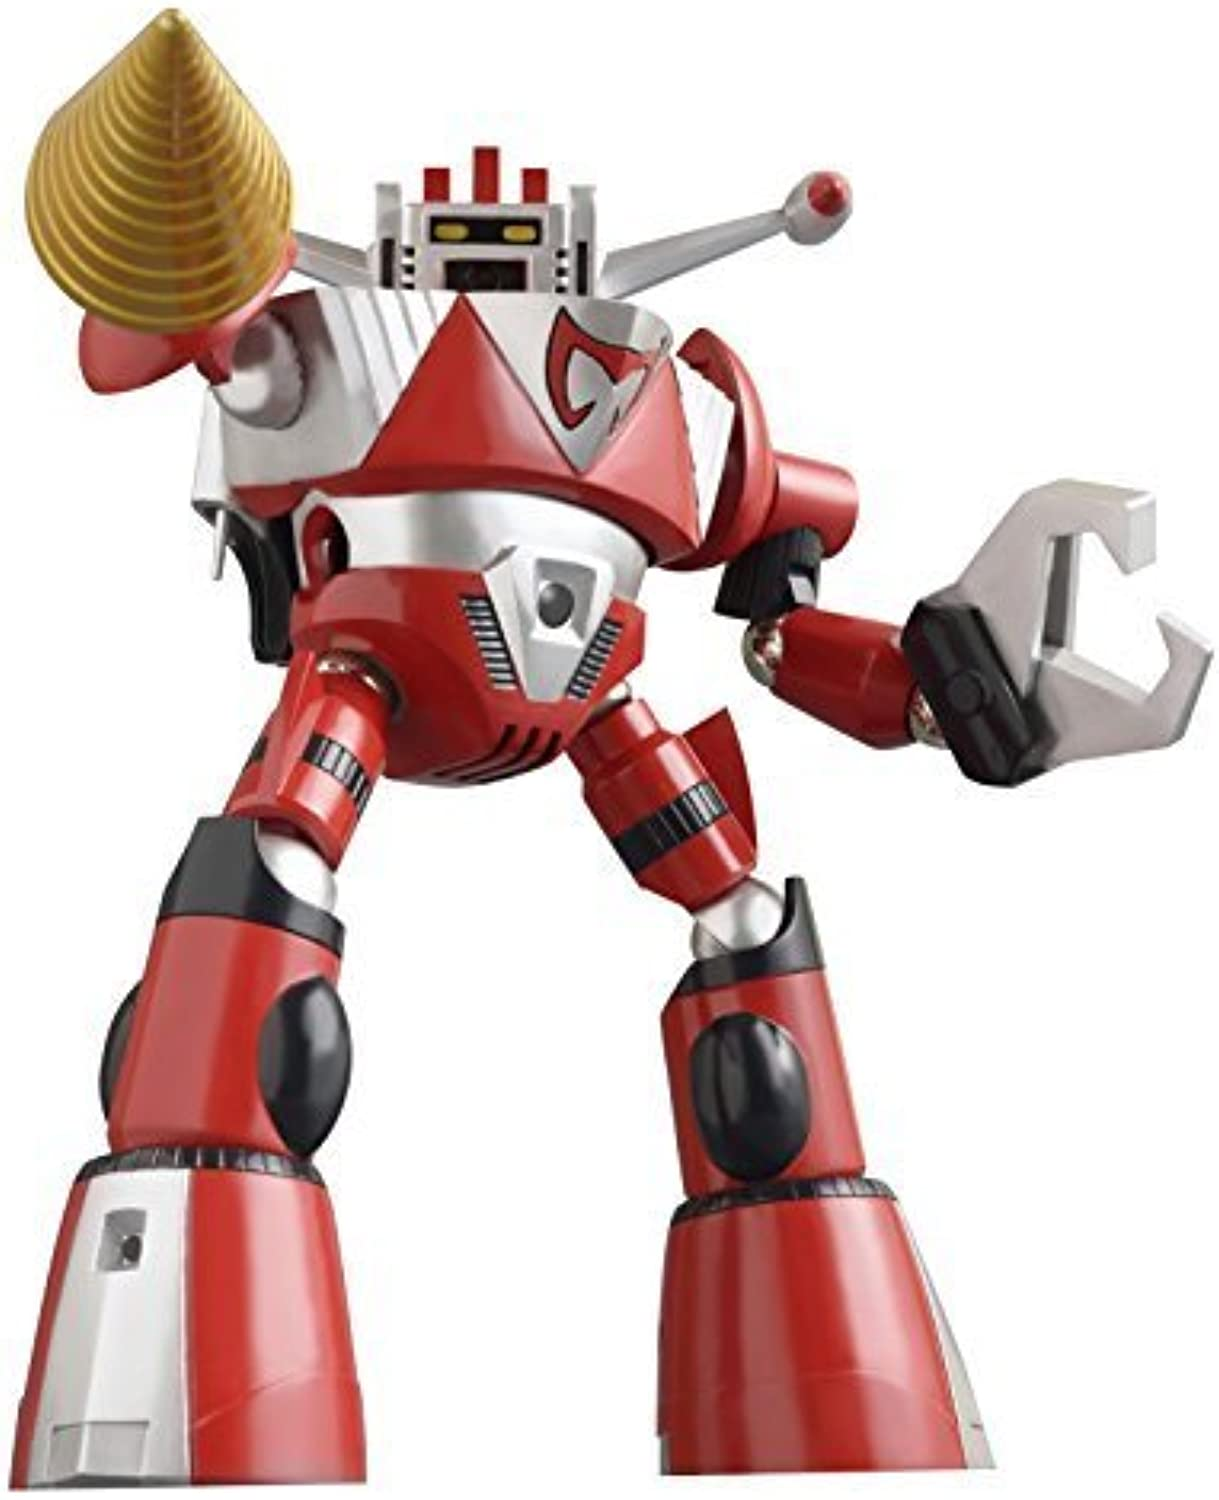 Evolution Toy Dynamite Action No. 26  Choujin Sentai Barattack Action Figure by toy evolution